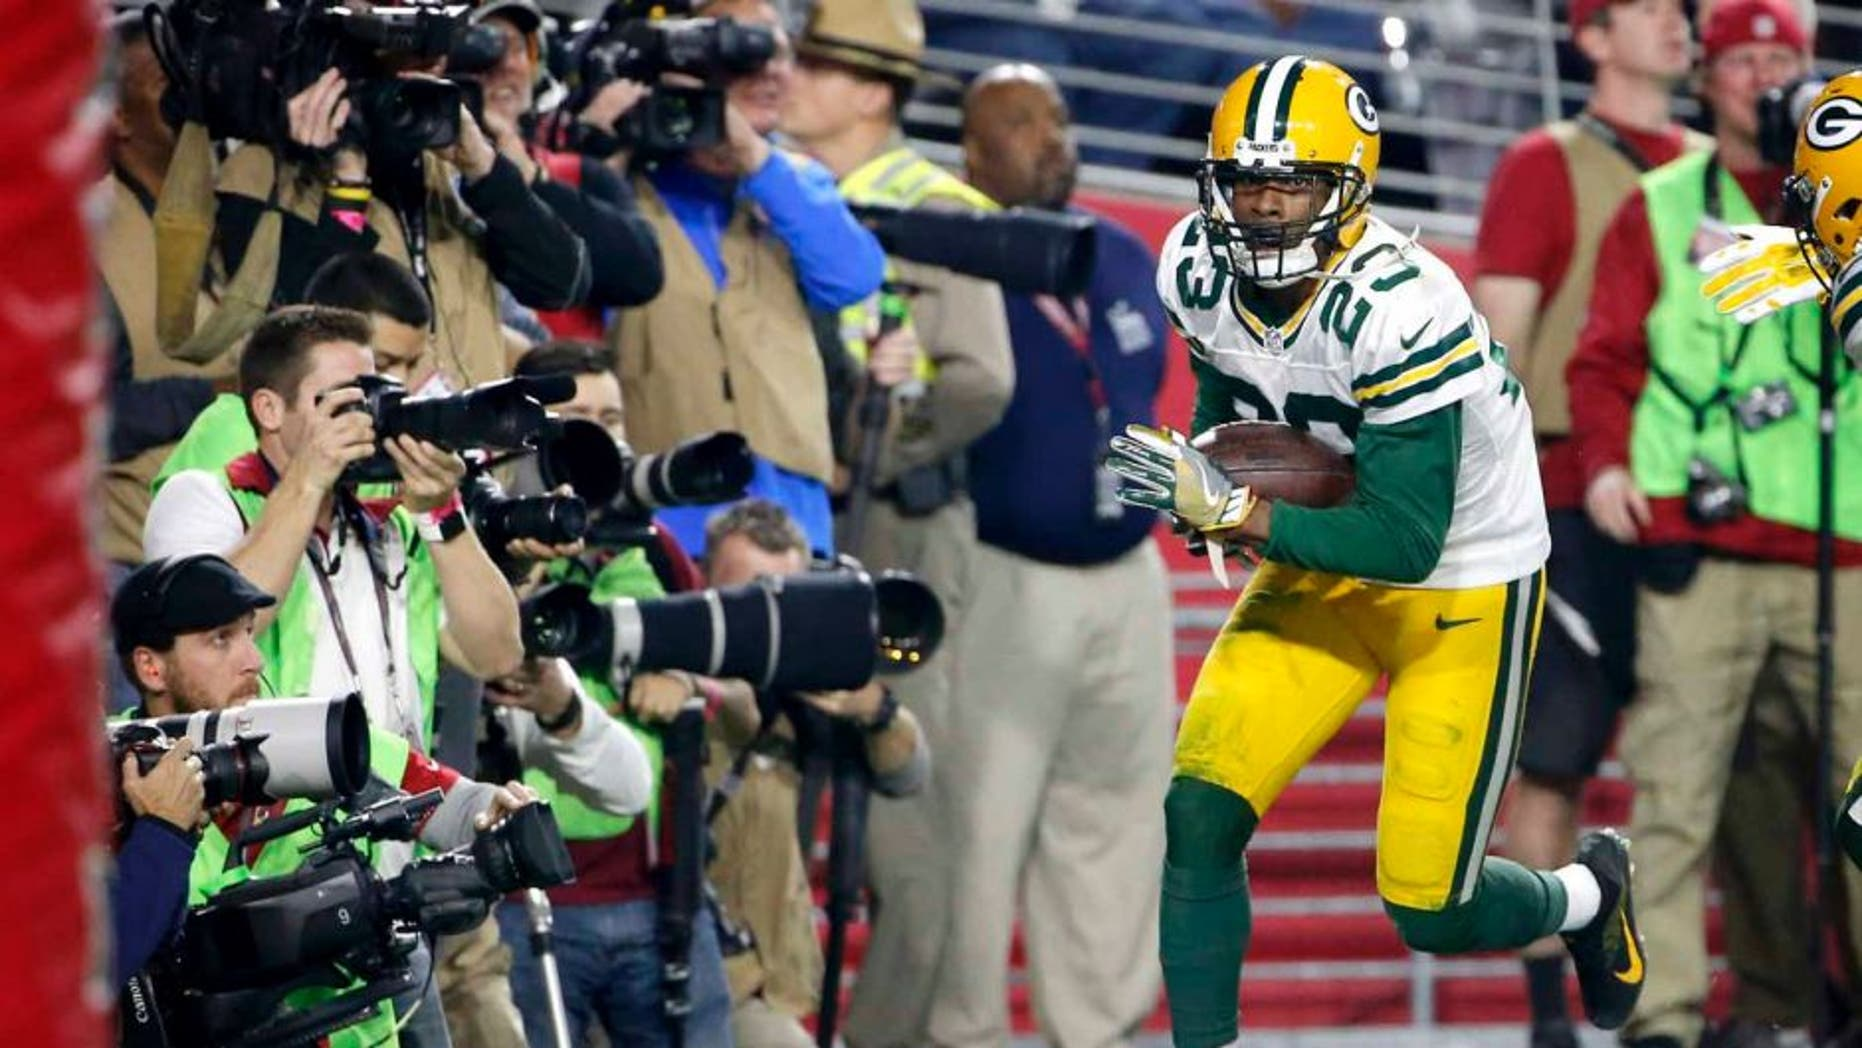 Saturday, Jan. 16: Green Bay Packers cornerback Damarious Randall celebrates his interception in the end zone against the Arizona Cardinals during the second half in Glendale, Ariz.